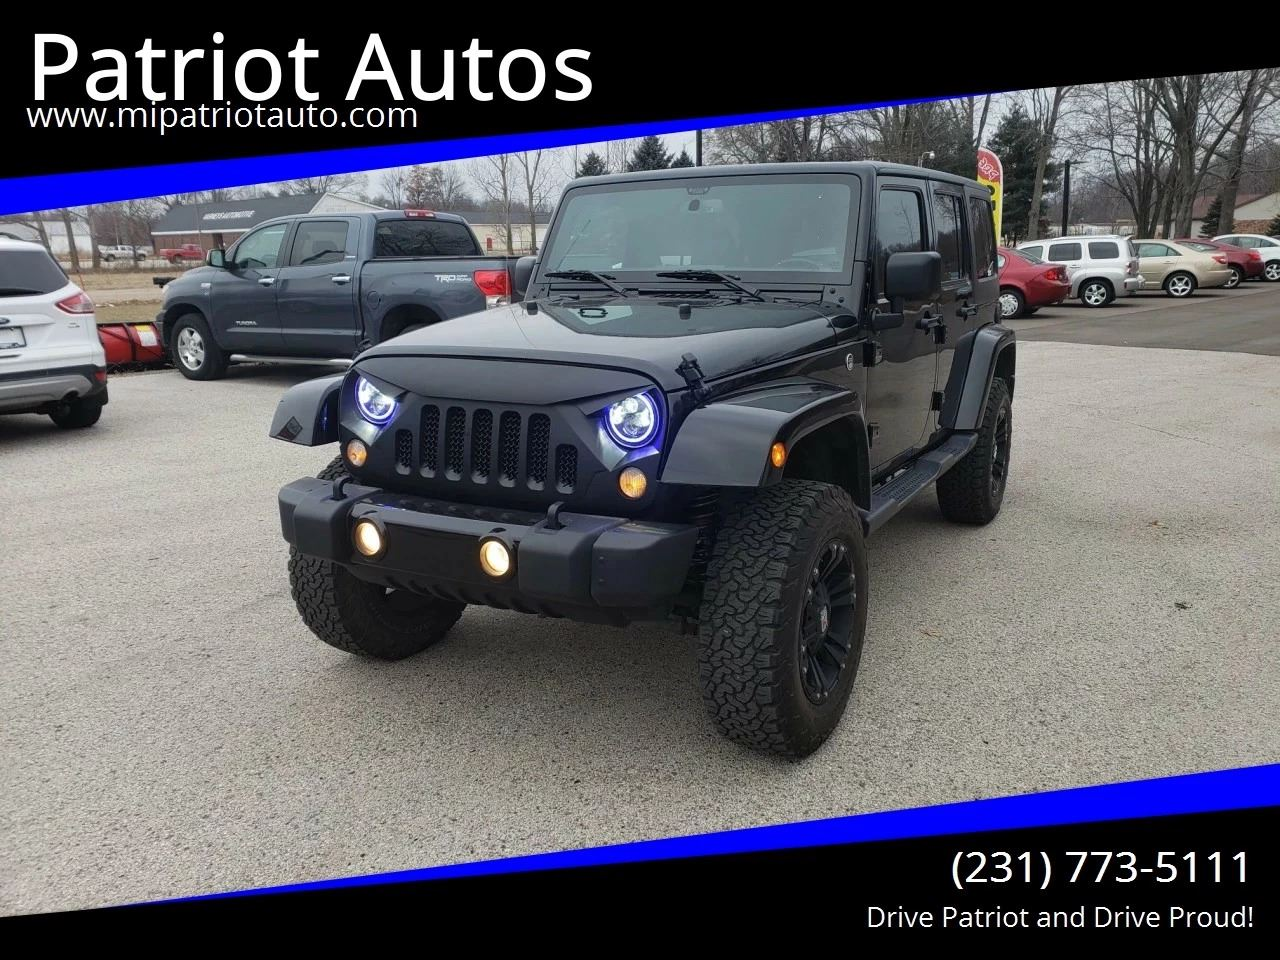 Patriot Autos